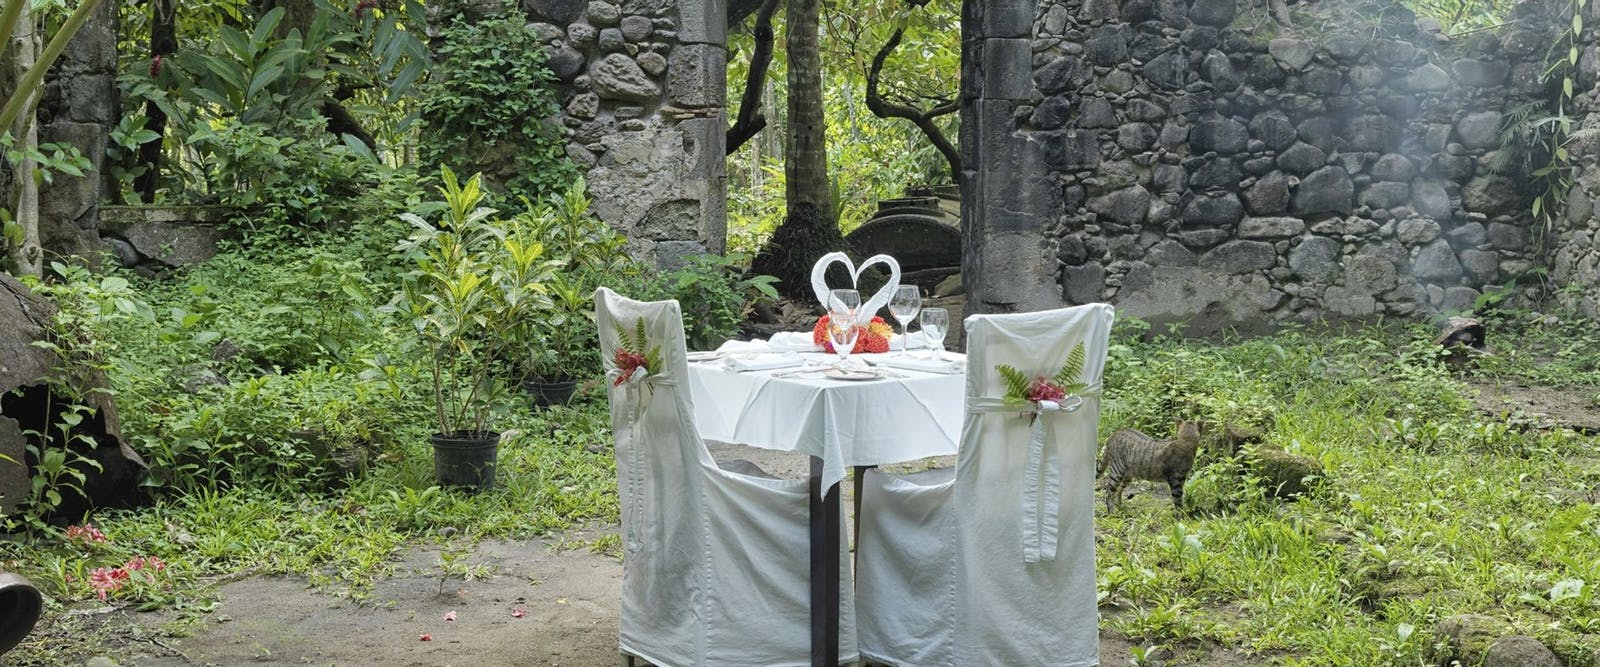 Jungle Dining Experience at Anse Chastanet, St Lucia